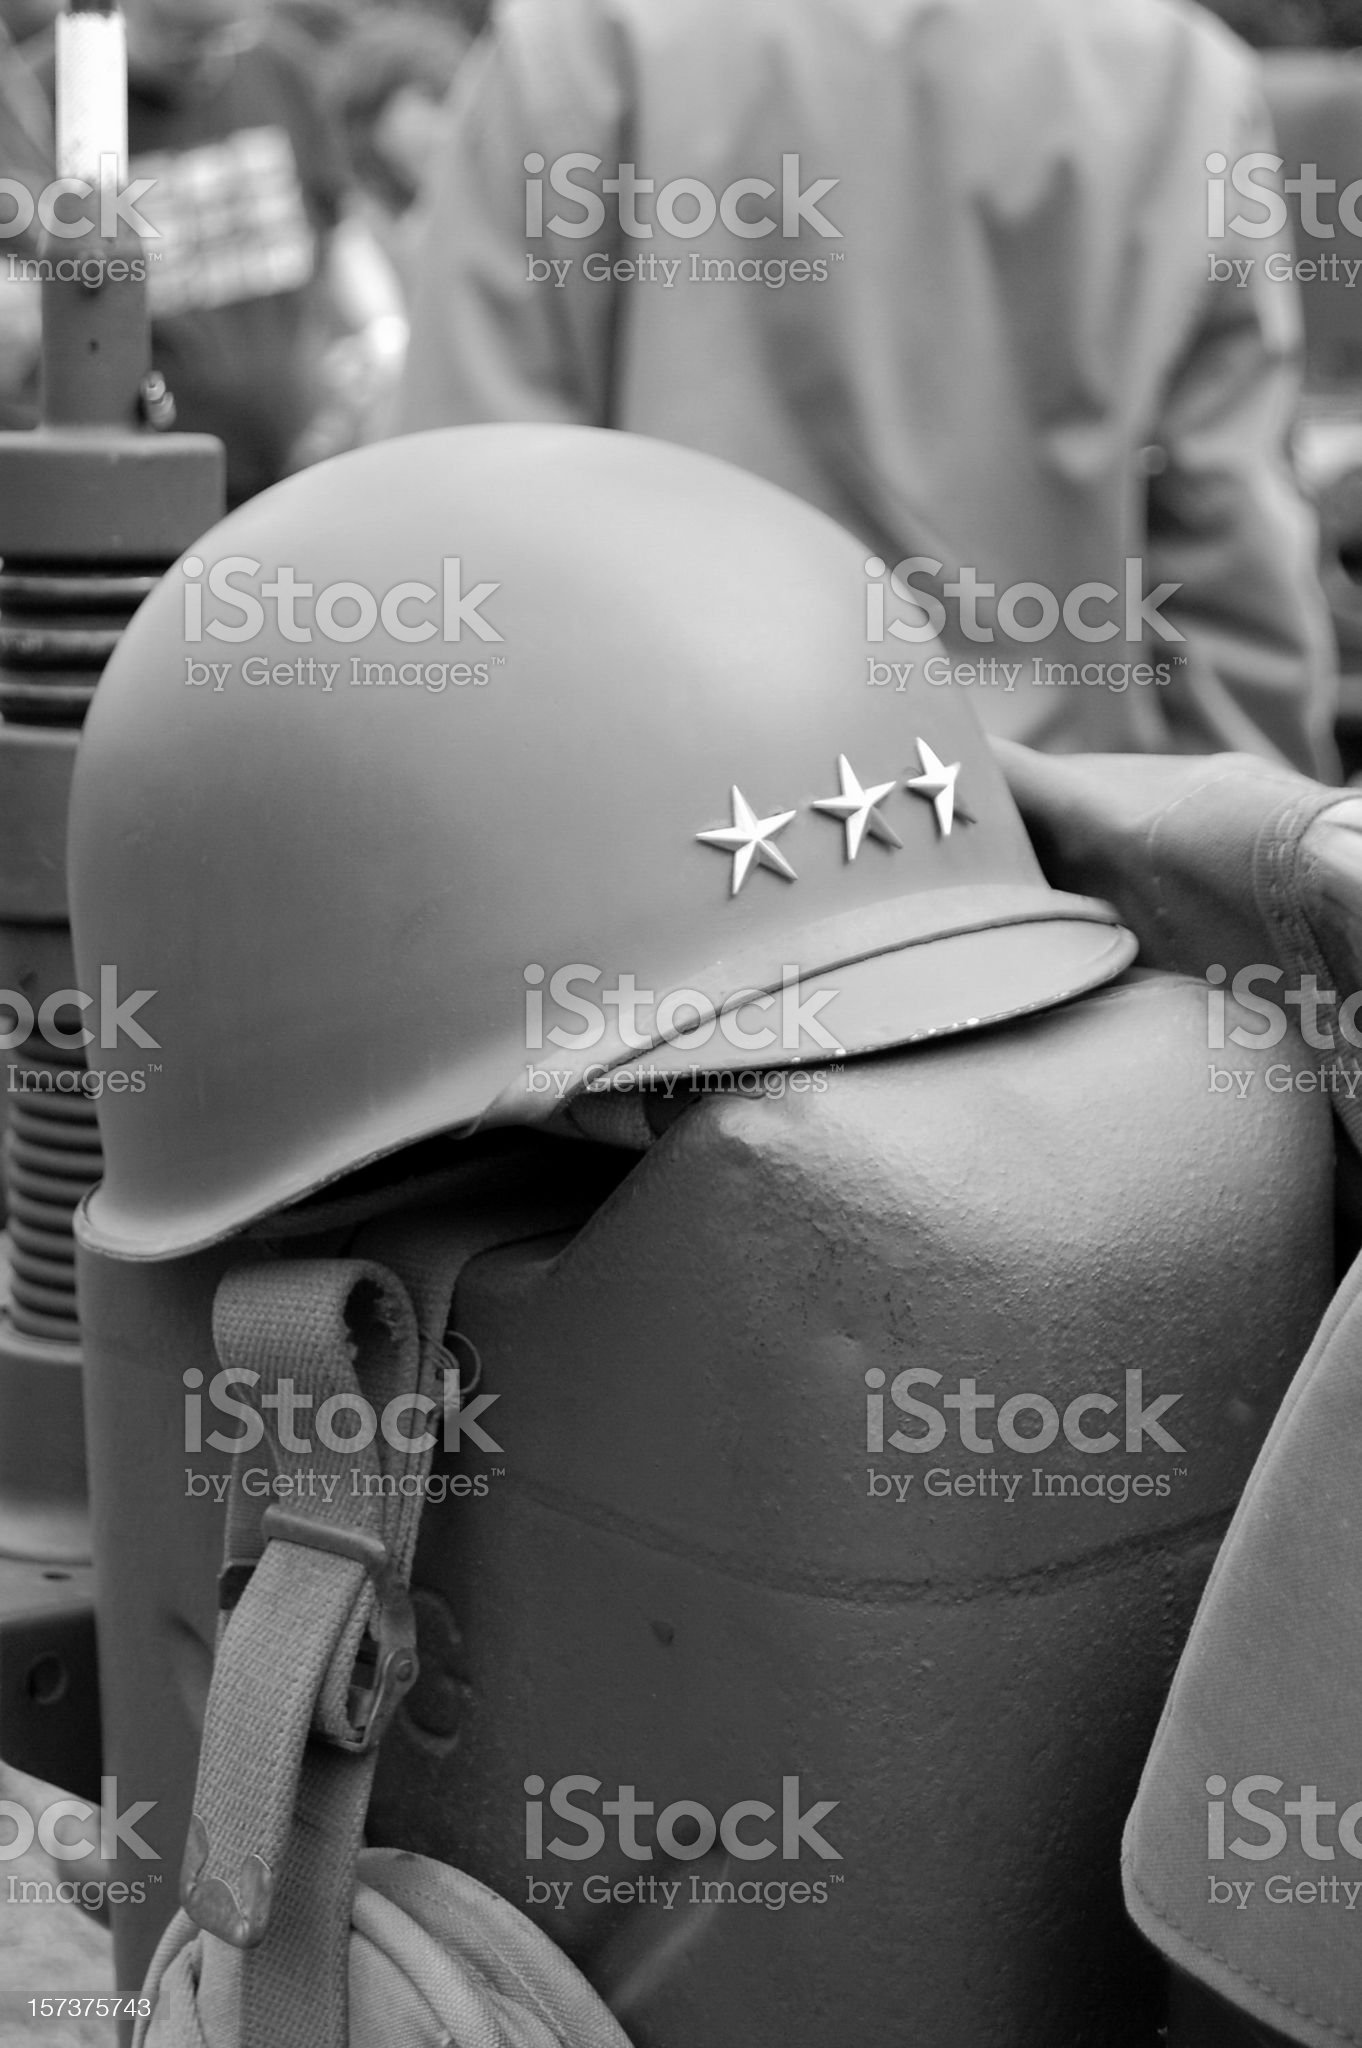 General's Helmet. royalty-free stock photo